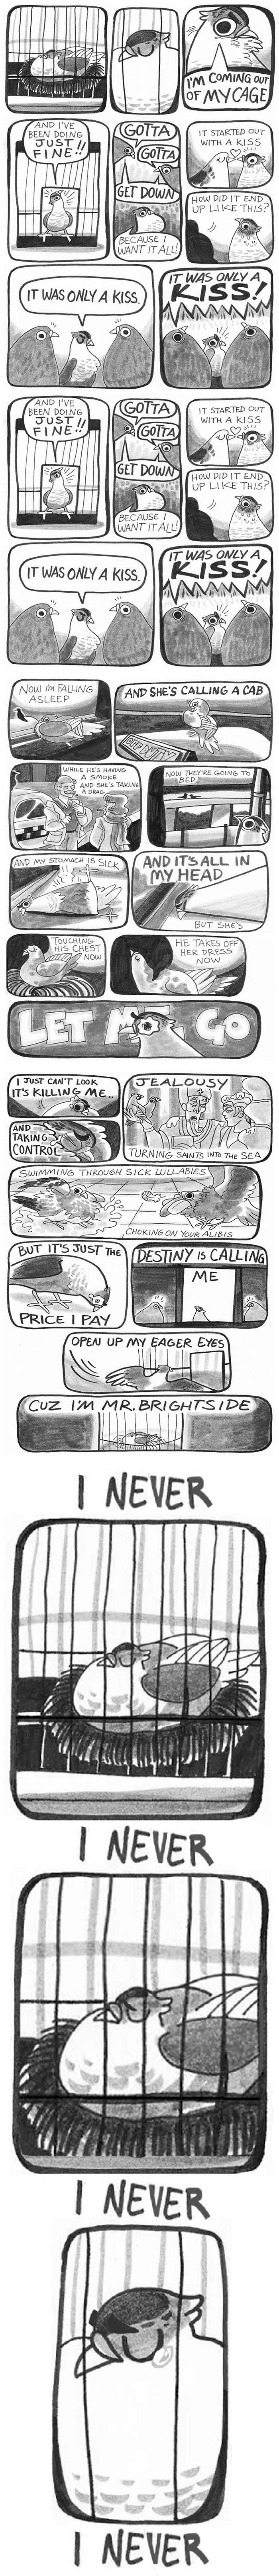 """Mr. Brightside"" als Tauben-Comic mr-brightside-pigeon-comic"